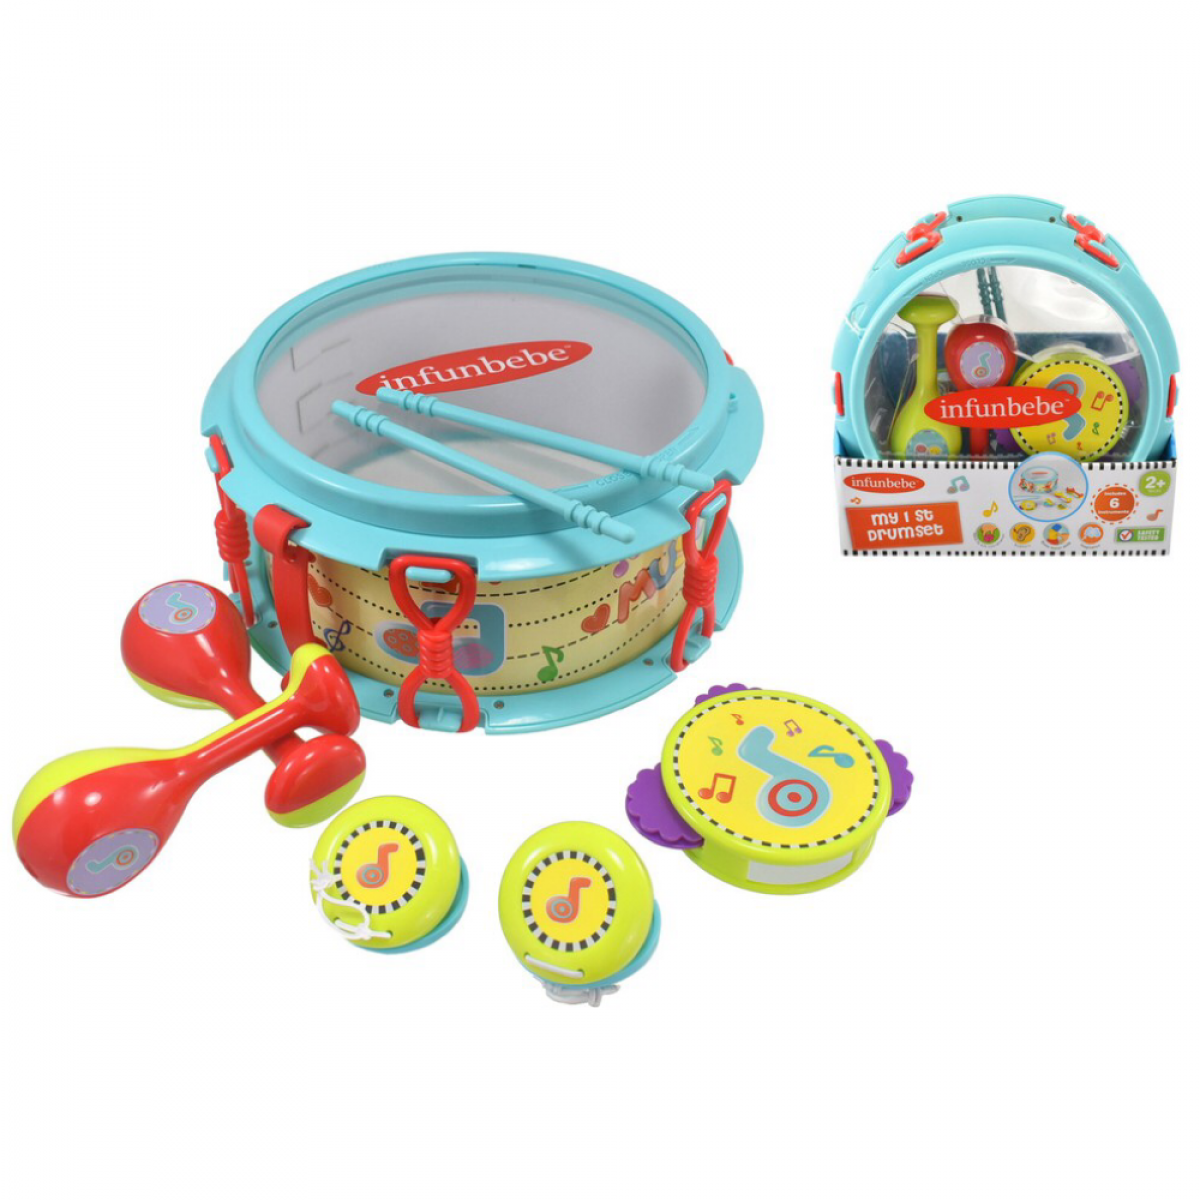 Infunbebe My 1st Drumset (6 Instruments) - 2 Years +